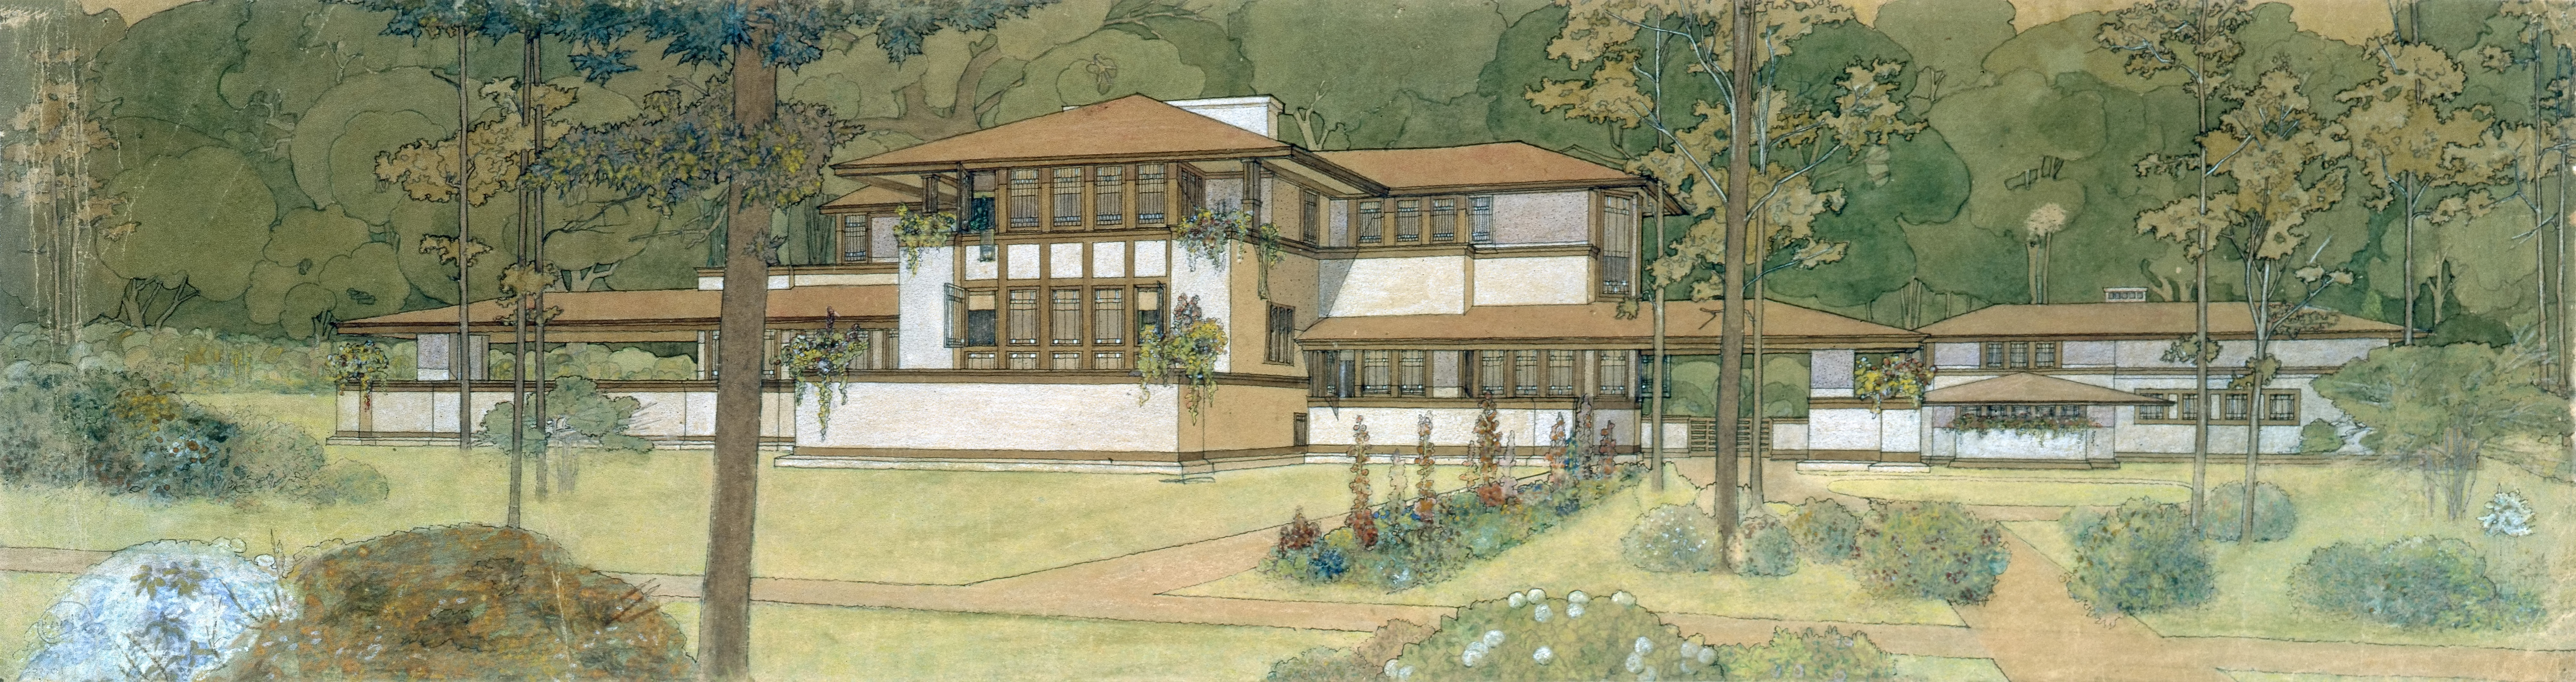 a summary of the philosophy of organic architecture by wright